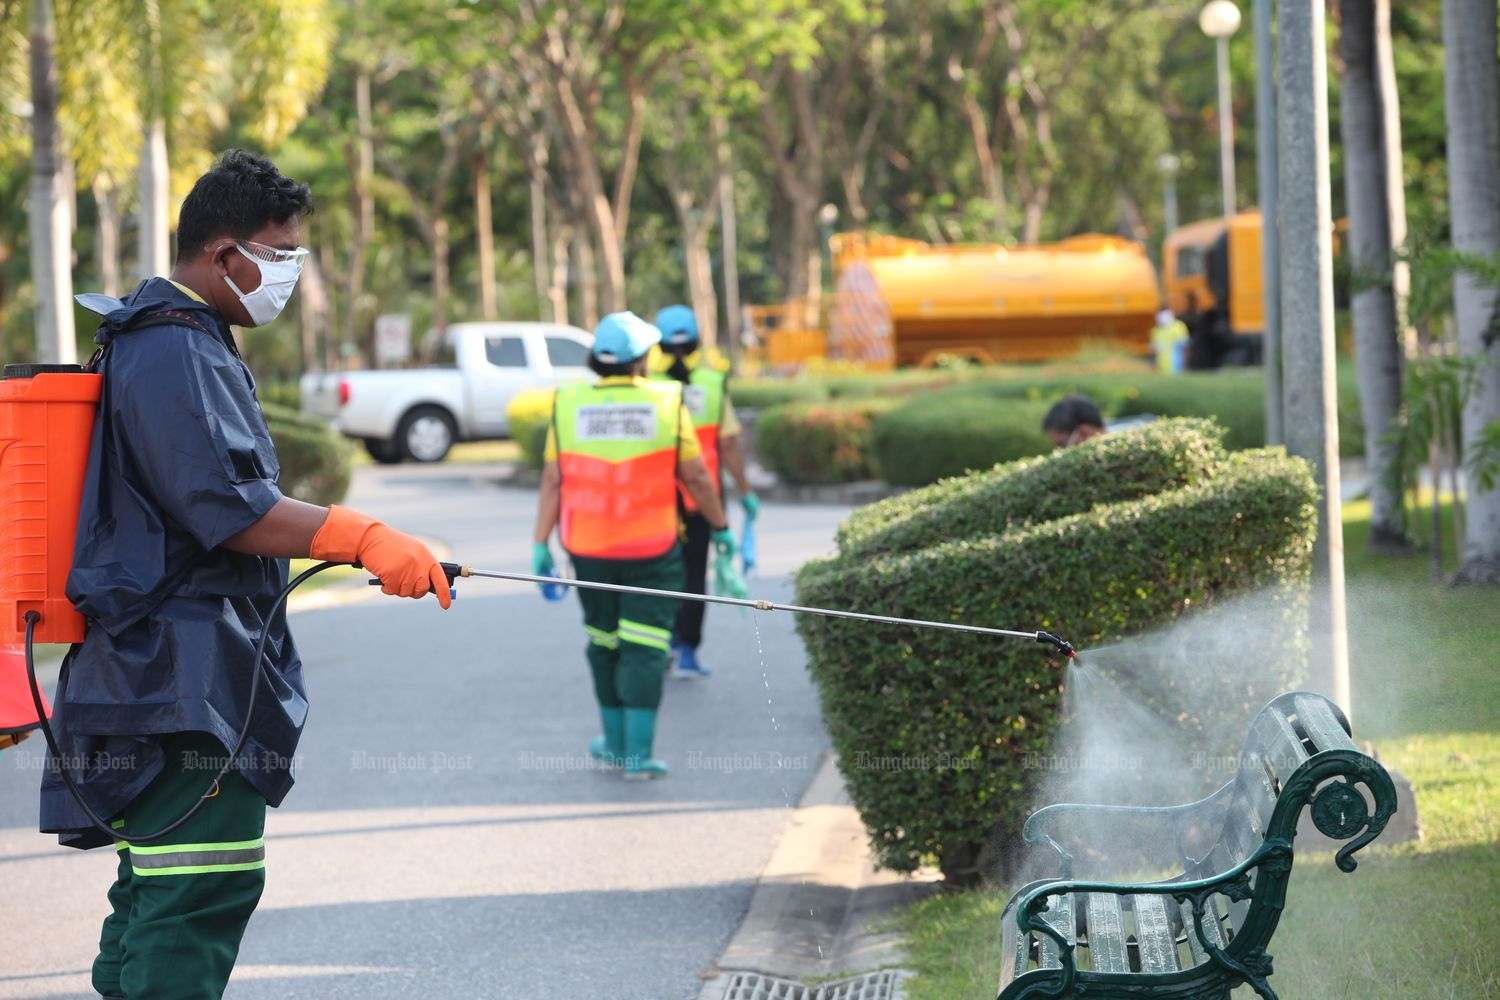 City Hall officials clean Chatuchak Park under the supervision of Bangkok Metropolitan Administration on Thursday. (Photo by Apichart Jinakul)